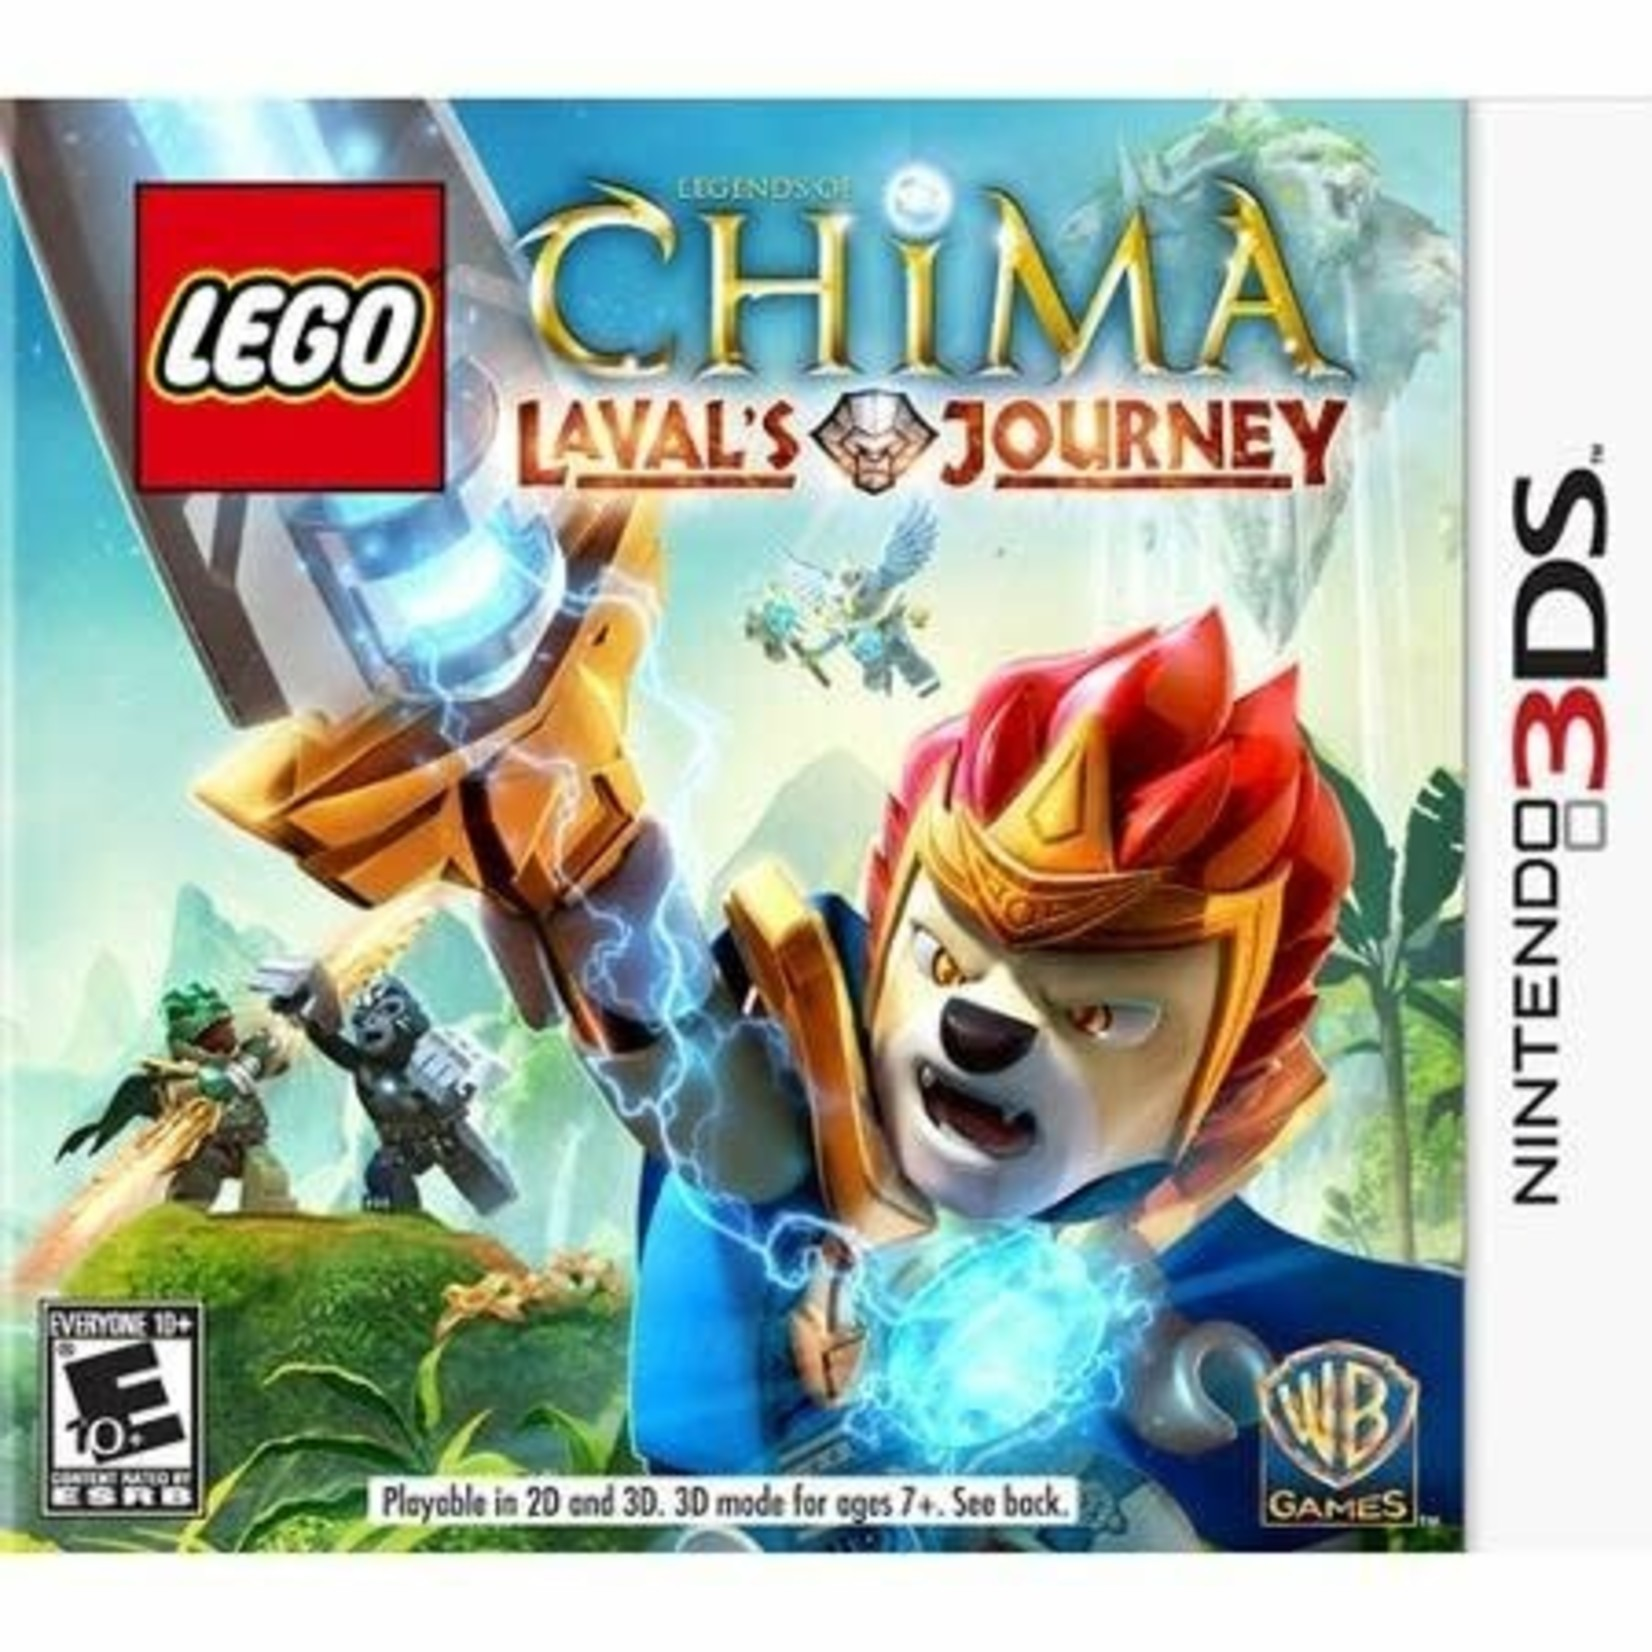 3DS-LEGO Legends of Chima: Laval's Journey